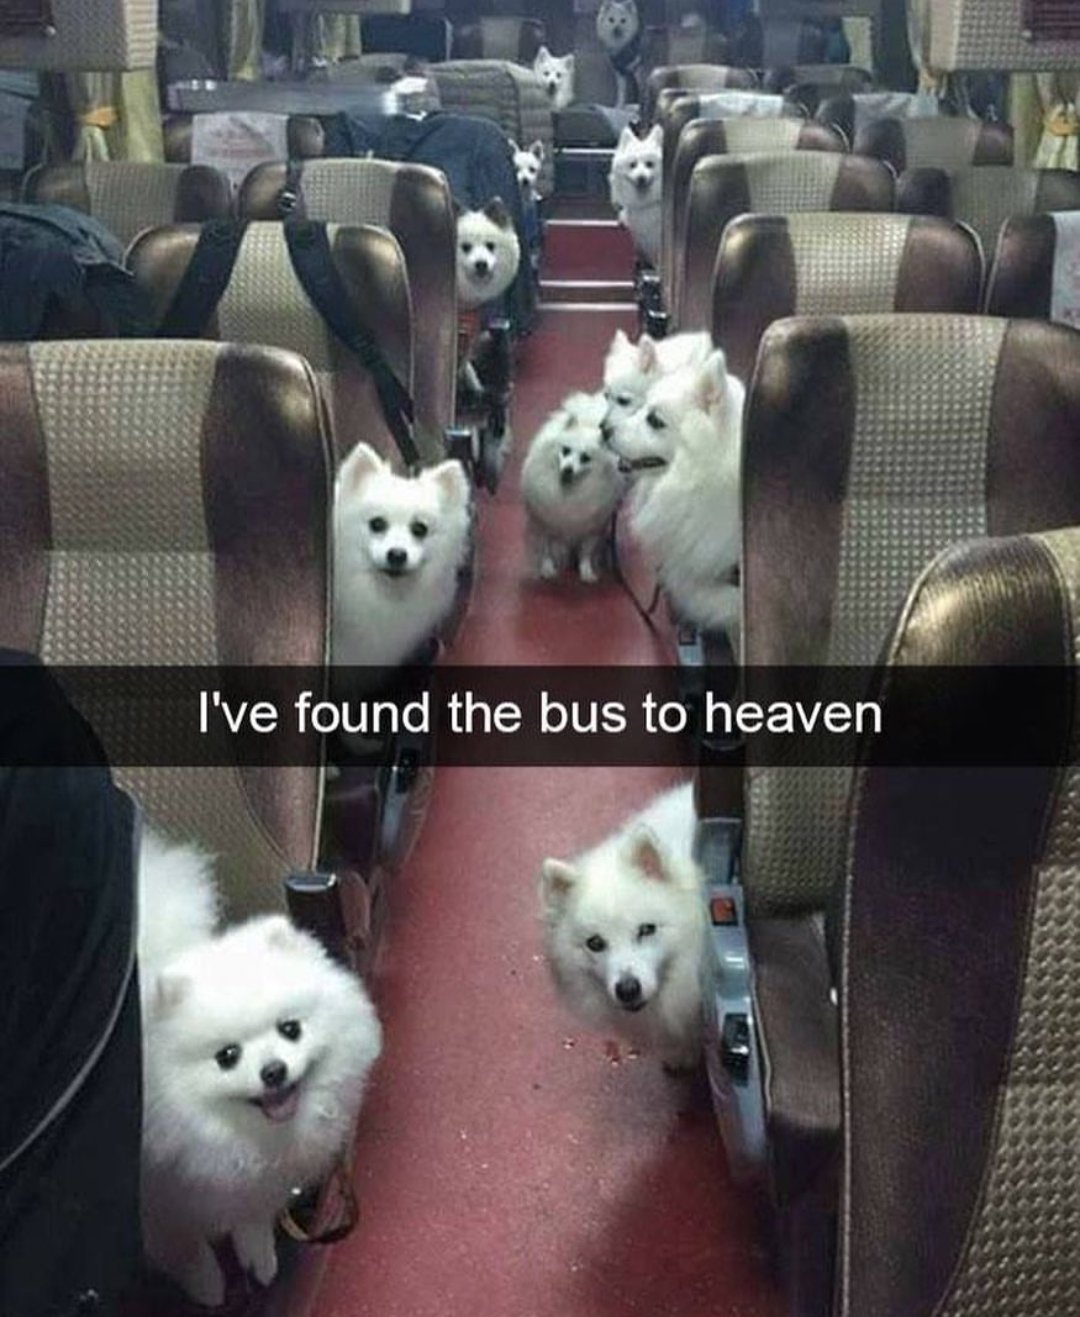 I've found the bus to heaven